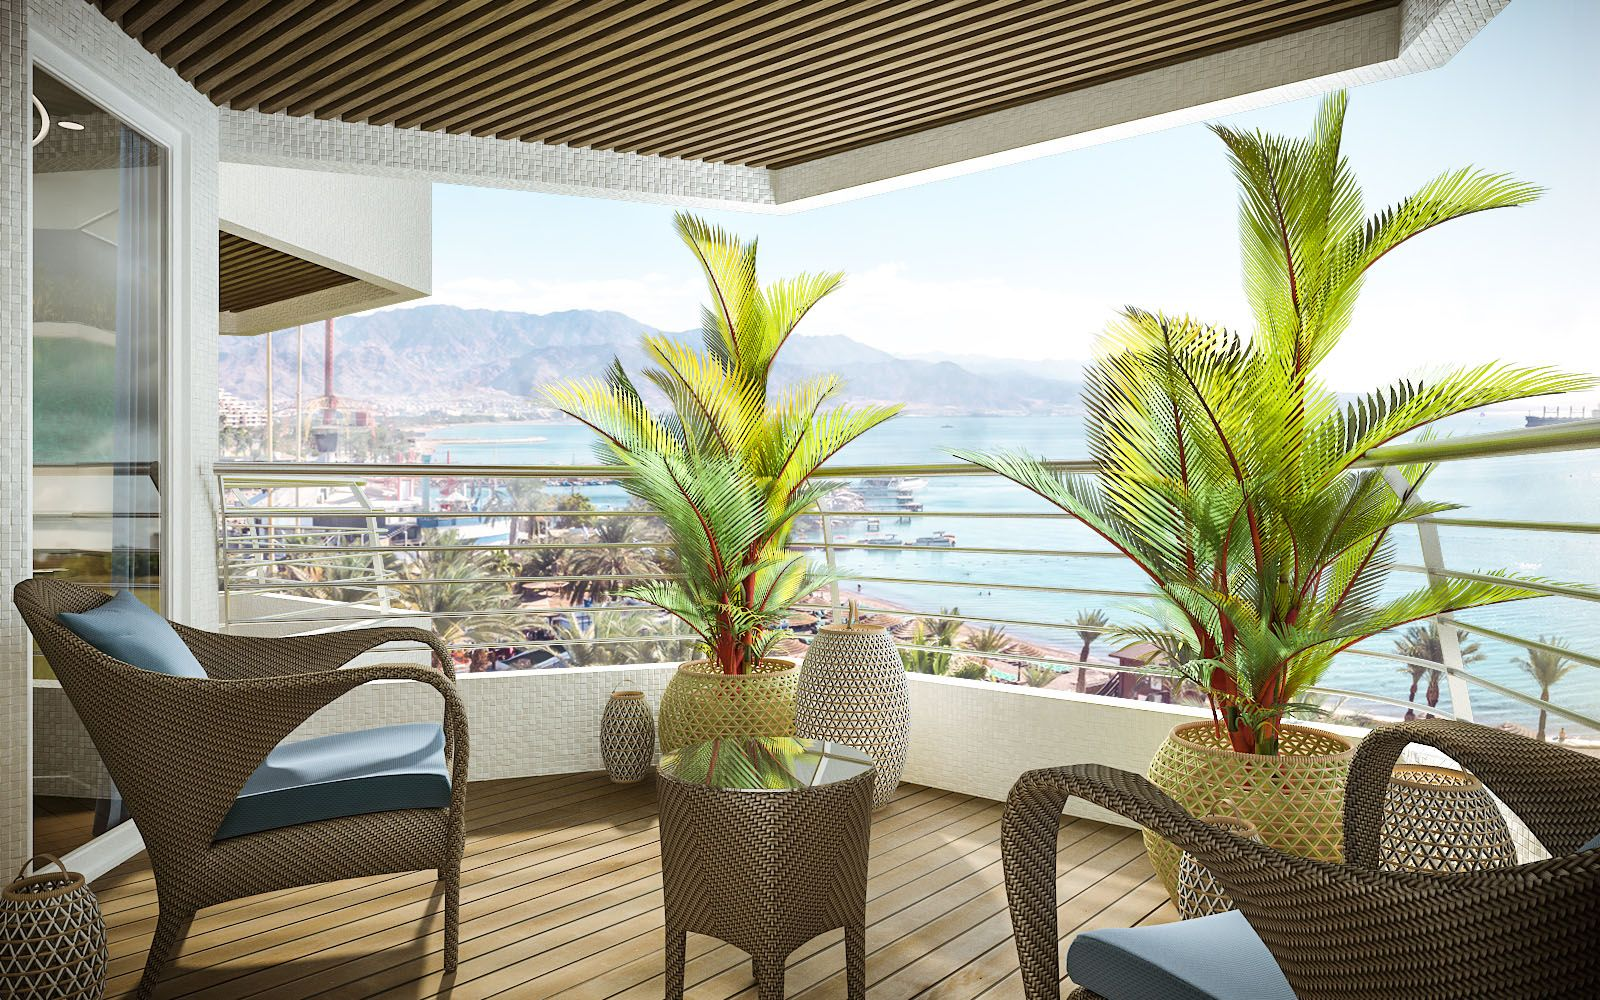 Hotel Eilat Rooms 973